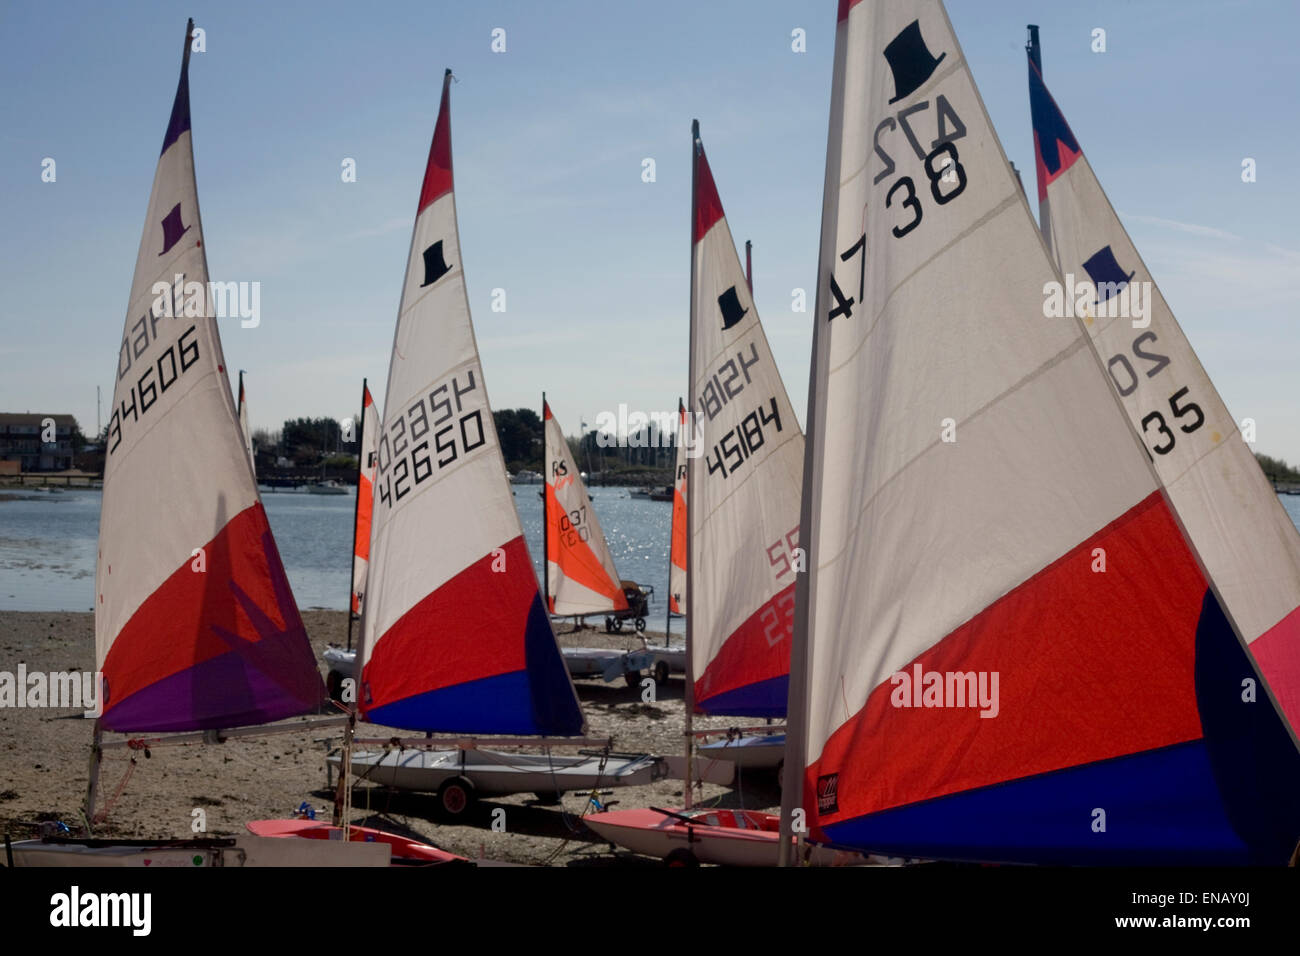 repetition,sails,dinghies,togetherness,sailing,group - Stock Image